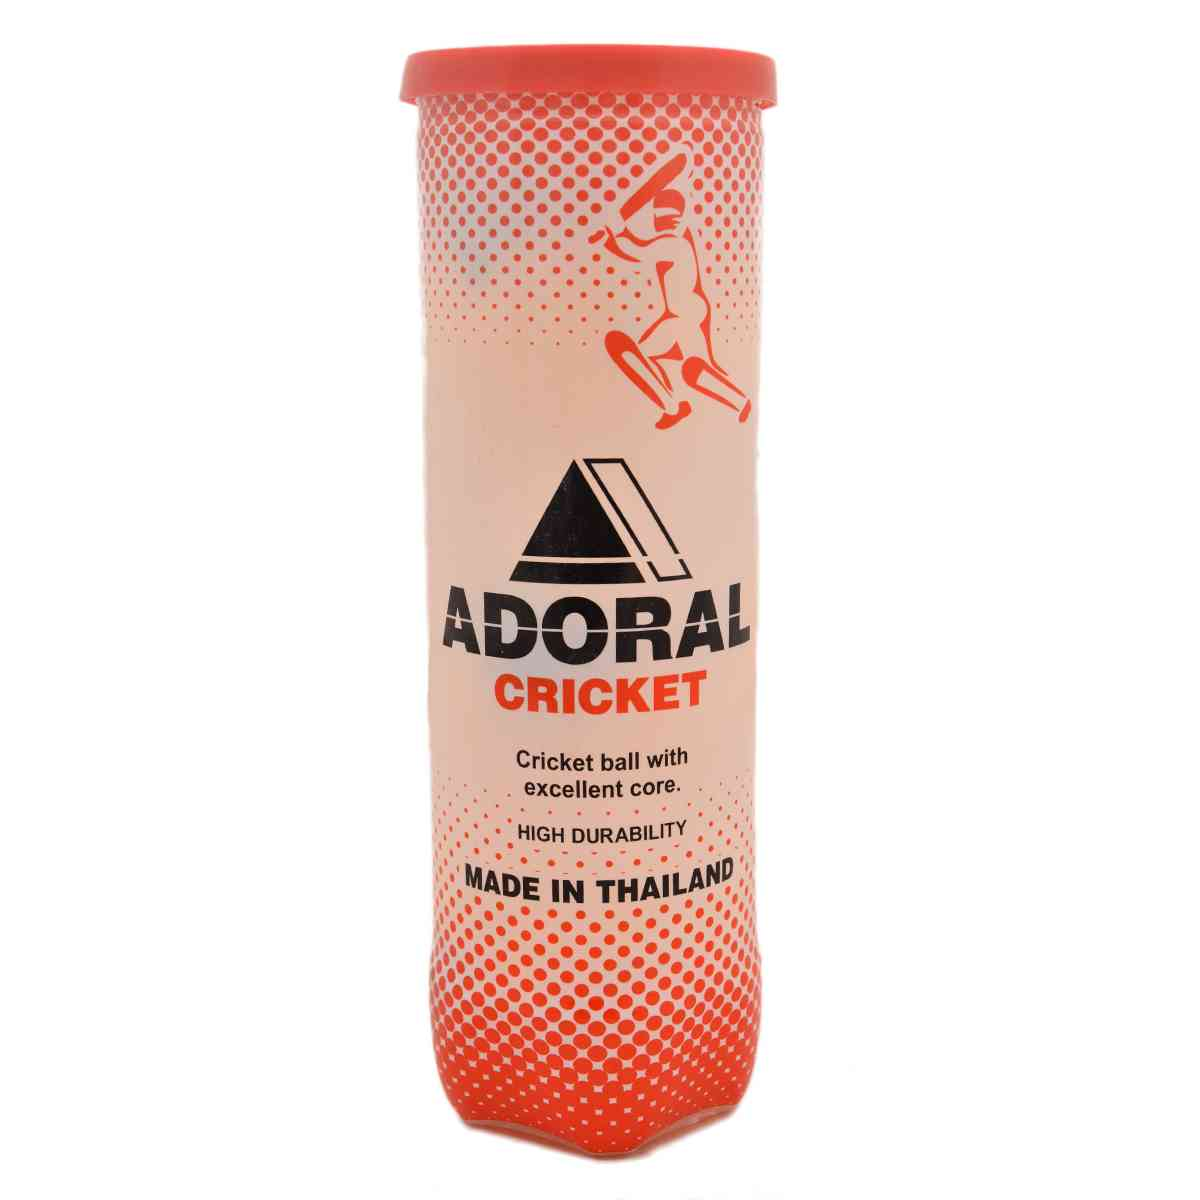 Adoral Cricket Pack of 3 Tennis Balls For Cricket and Tennis (High Quality, Made in Thailand)